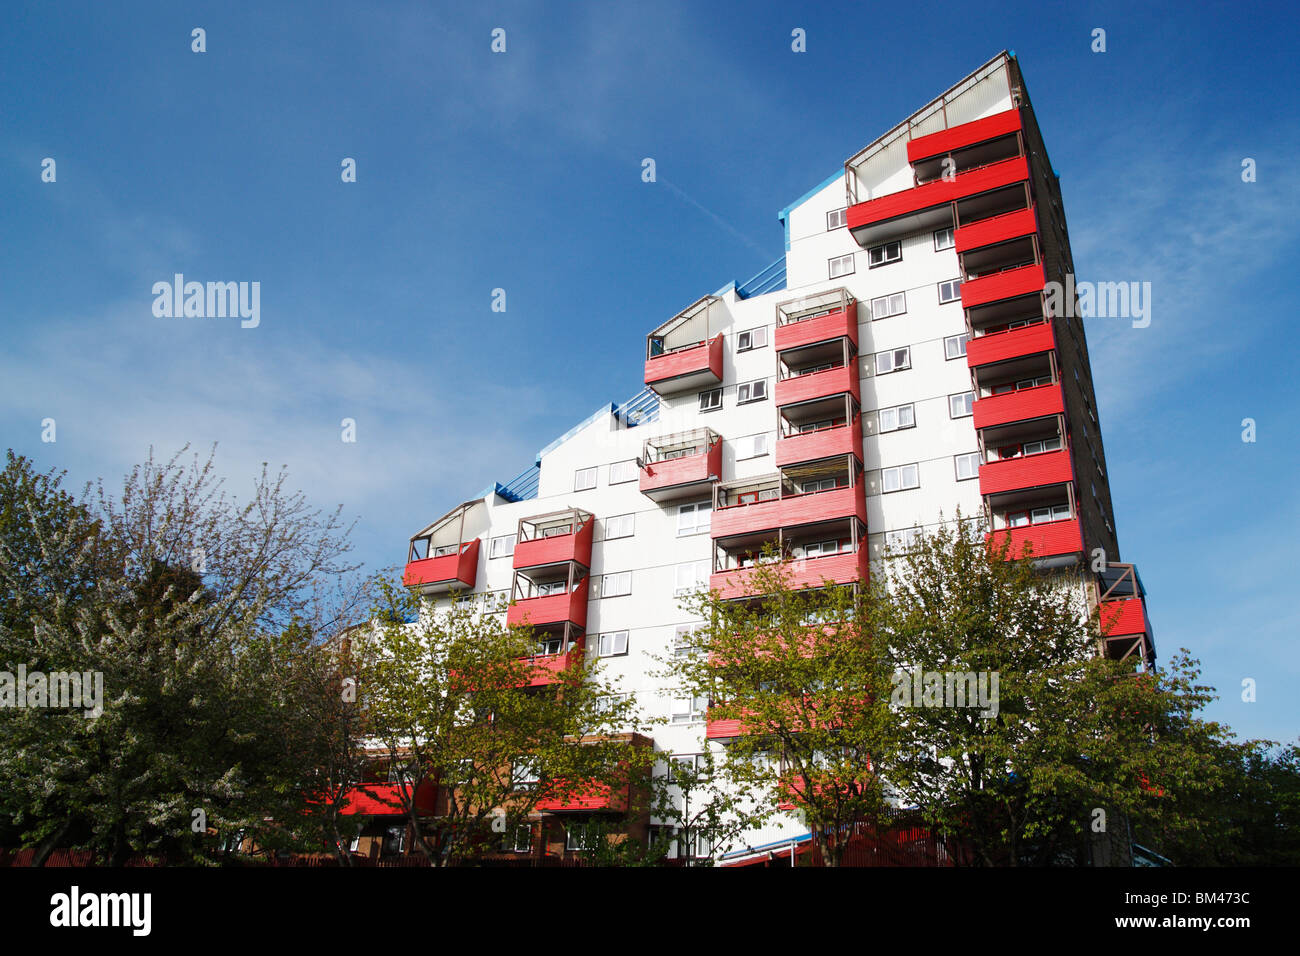 tom-collins-house-part-of-the-byker-wall